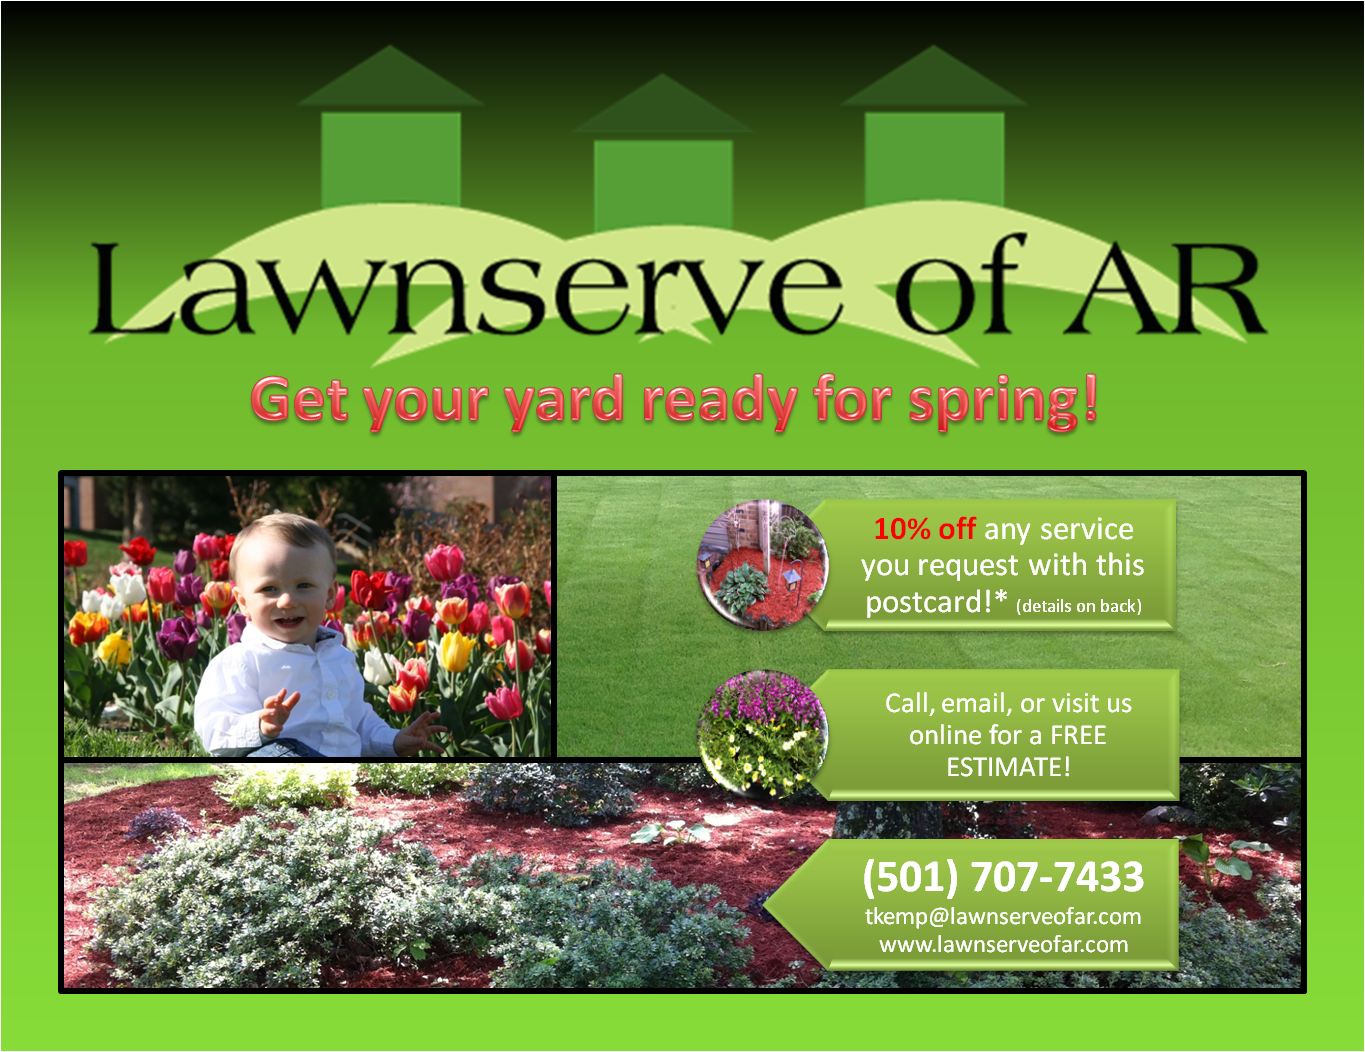 Lawnserve of AR-Fertilization and Weed Control, Lawn and Landscape Services